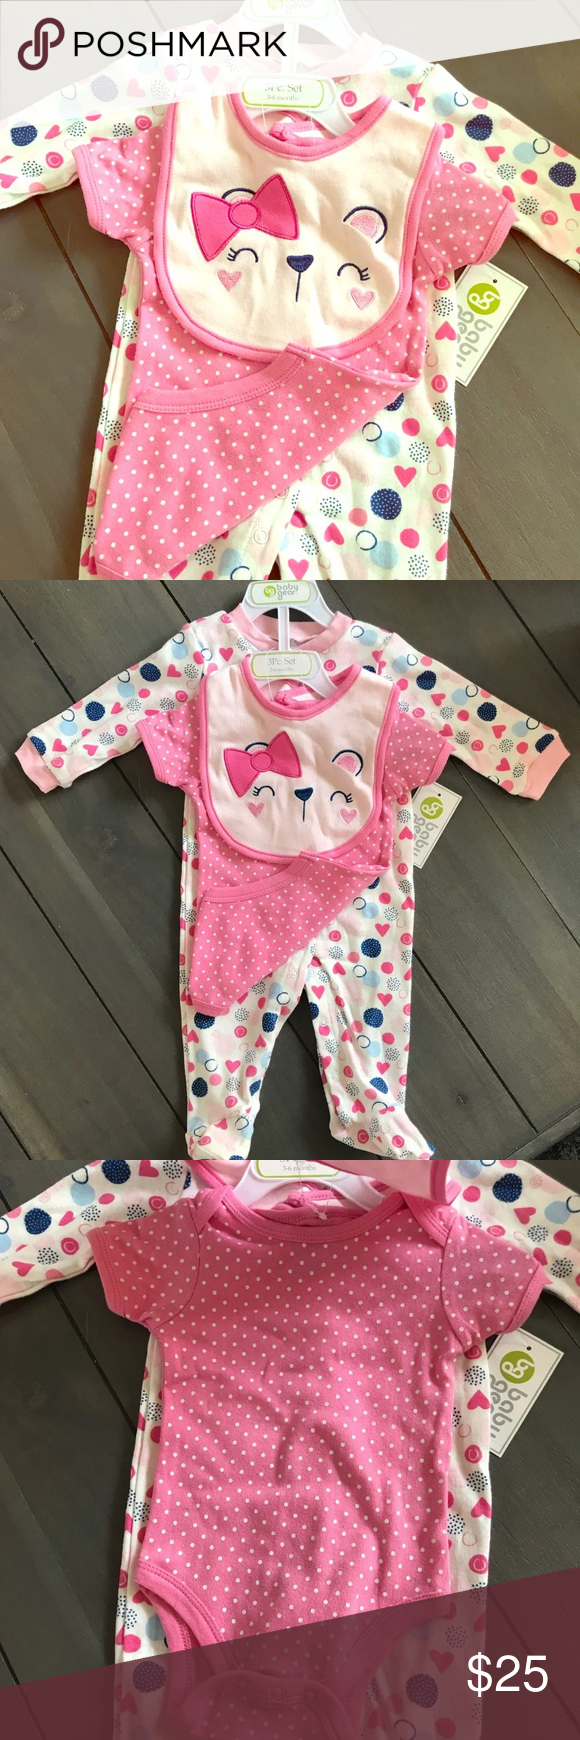 e65d00f9251f NWT 3-6 Month Baby Girl Matching Outfit Set Matching outfit set ...